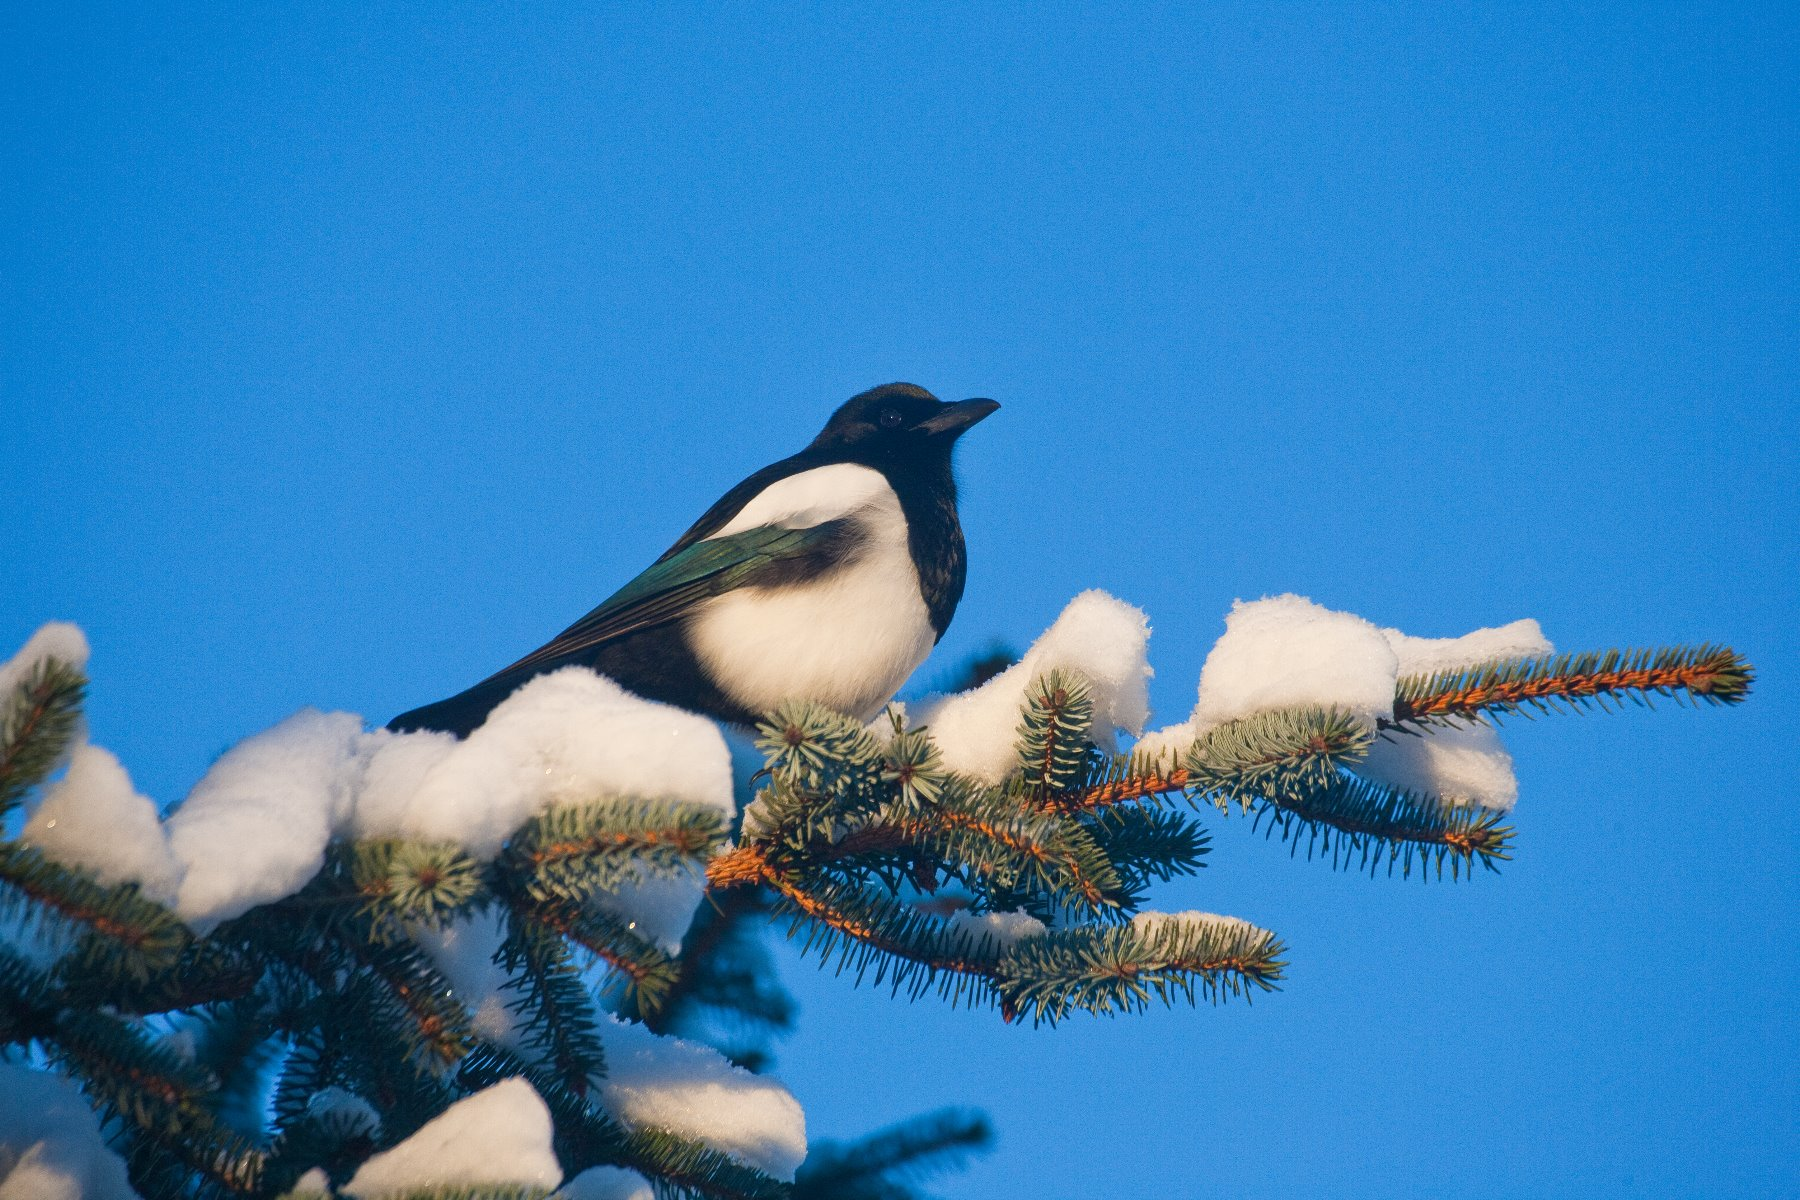 A Black-billed Magpie was perched just above the carcass of a dead deer.